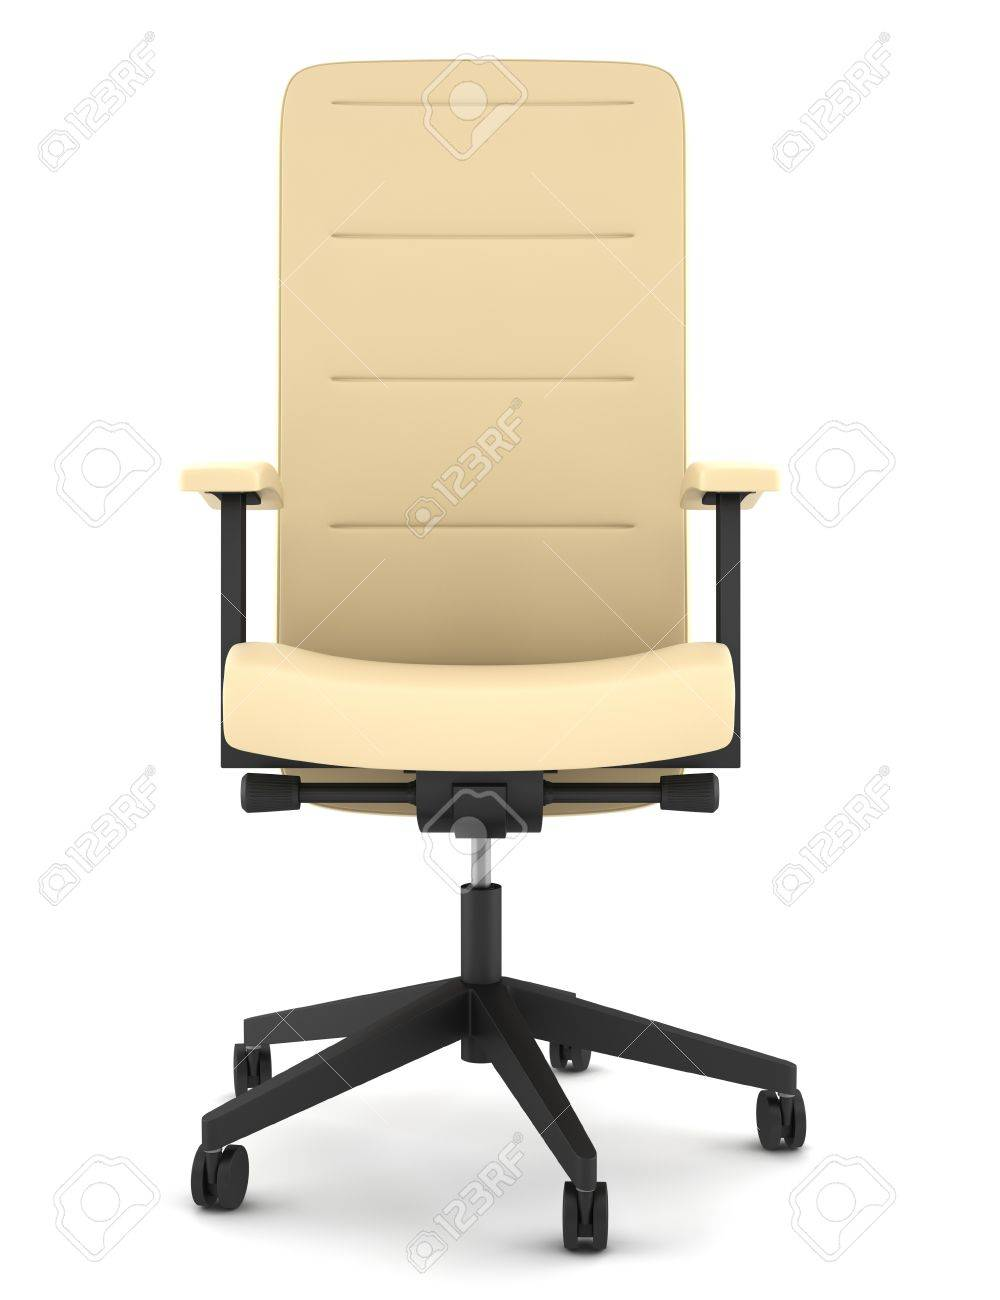 modern beige leather office chair isolated on white background